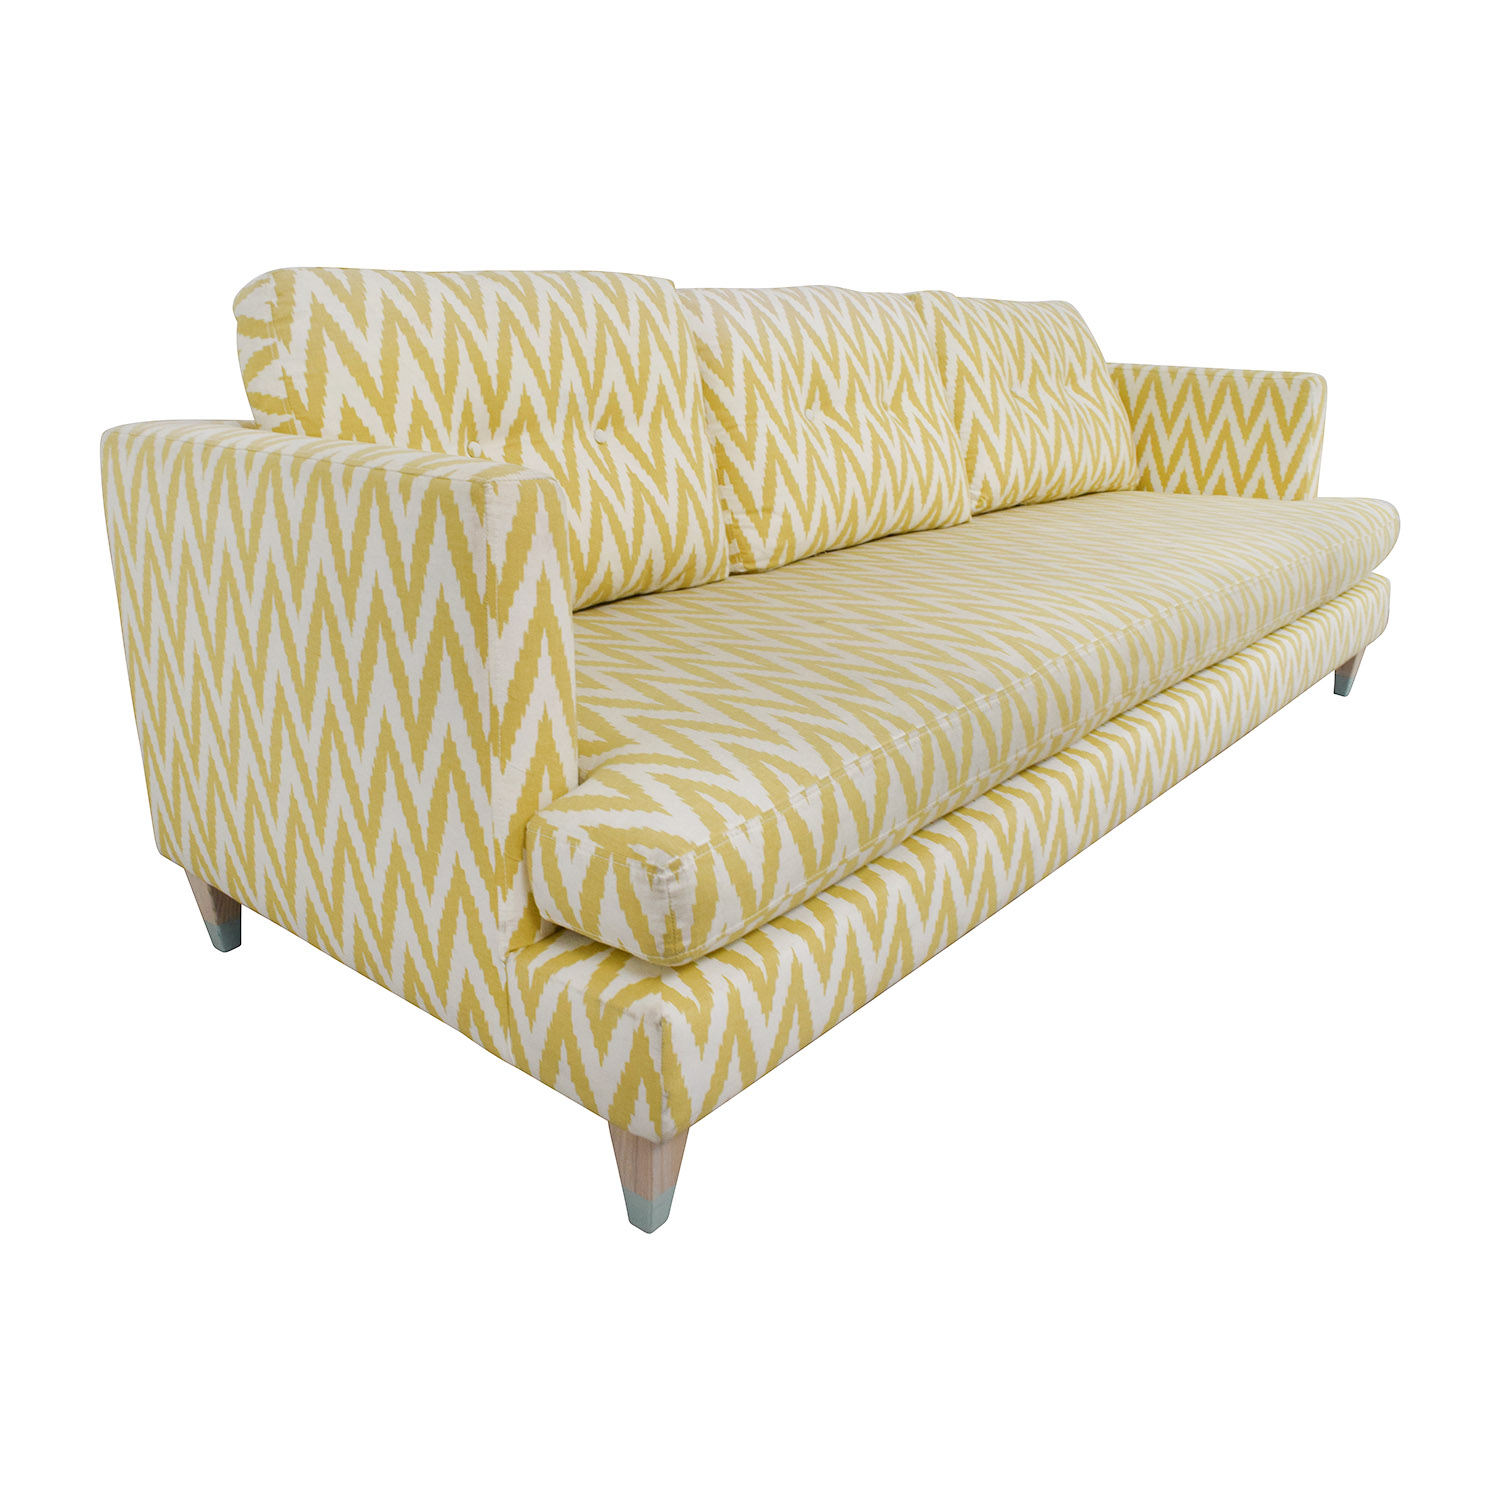 West Elm West Elm Yellow and White Single Cushion Sofa second hand